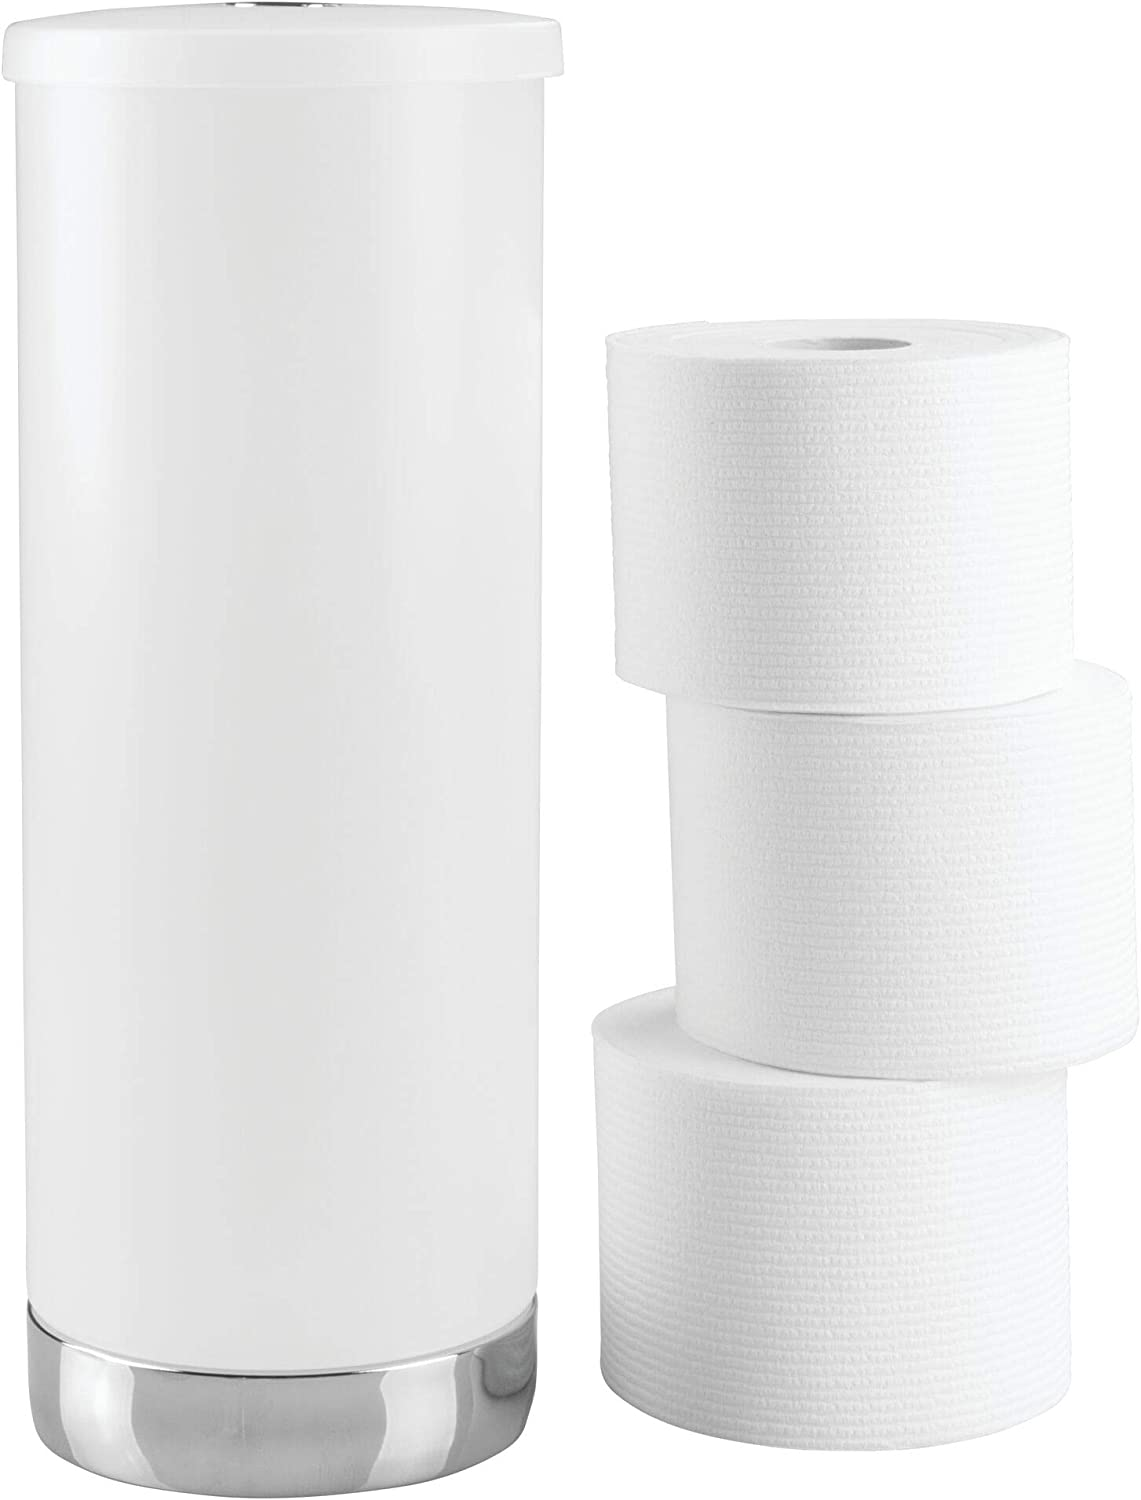 Idesign Aria Plastic Toilet Tissue Roll Reserve Organizer For Bathroom Vertical Free Standing Compact Organizer Holds 3 Rolls Of Toilet Paper Clear Home Kitchen